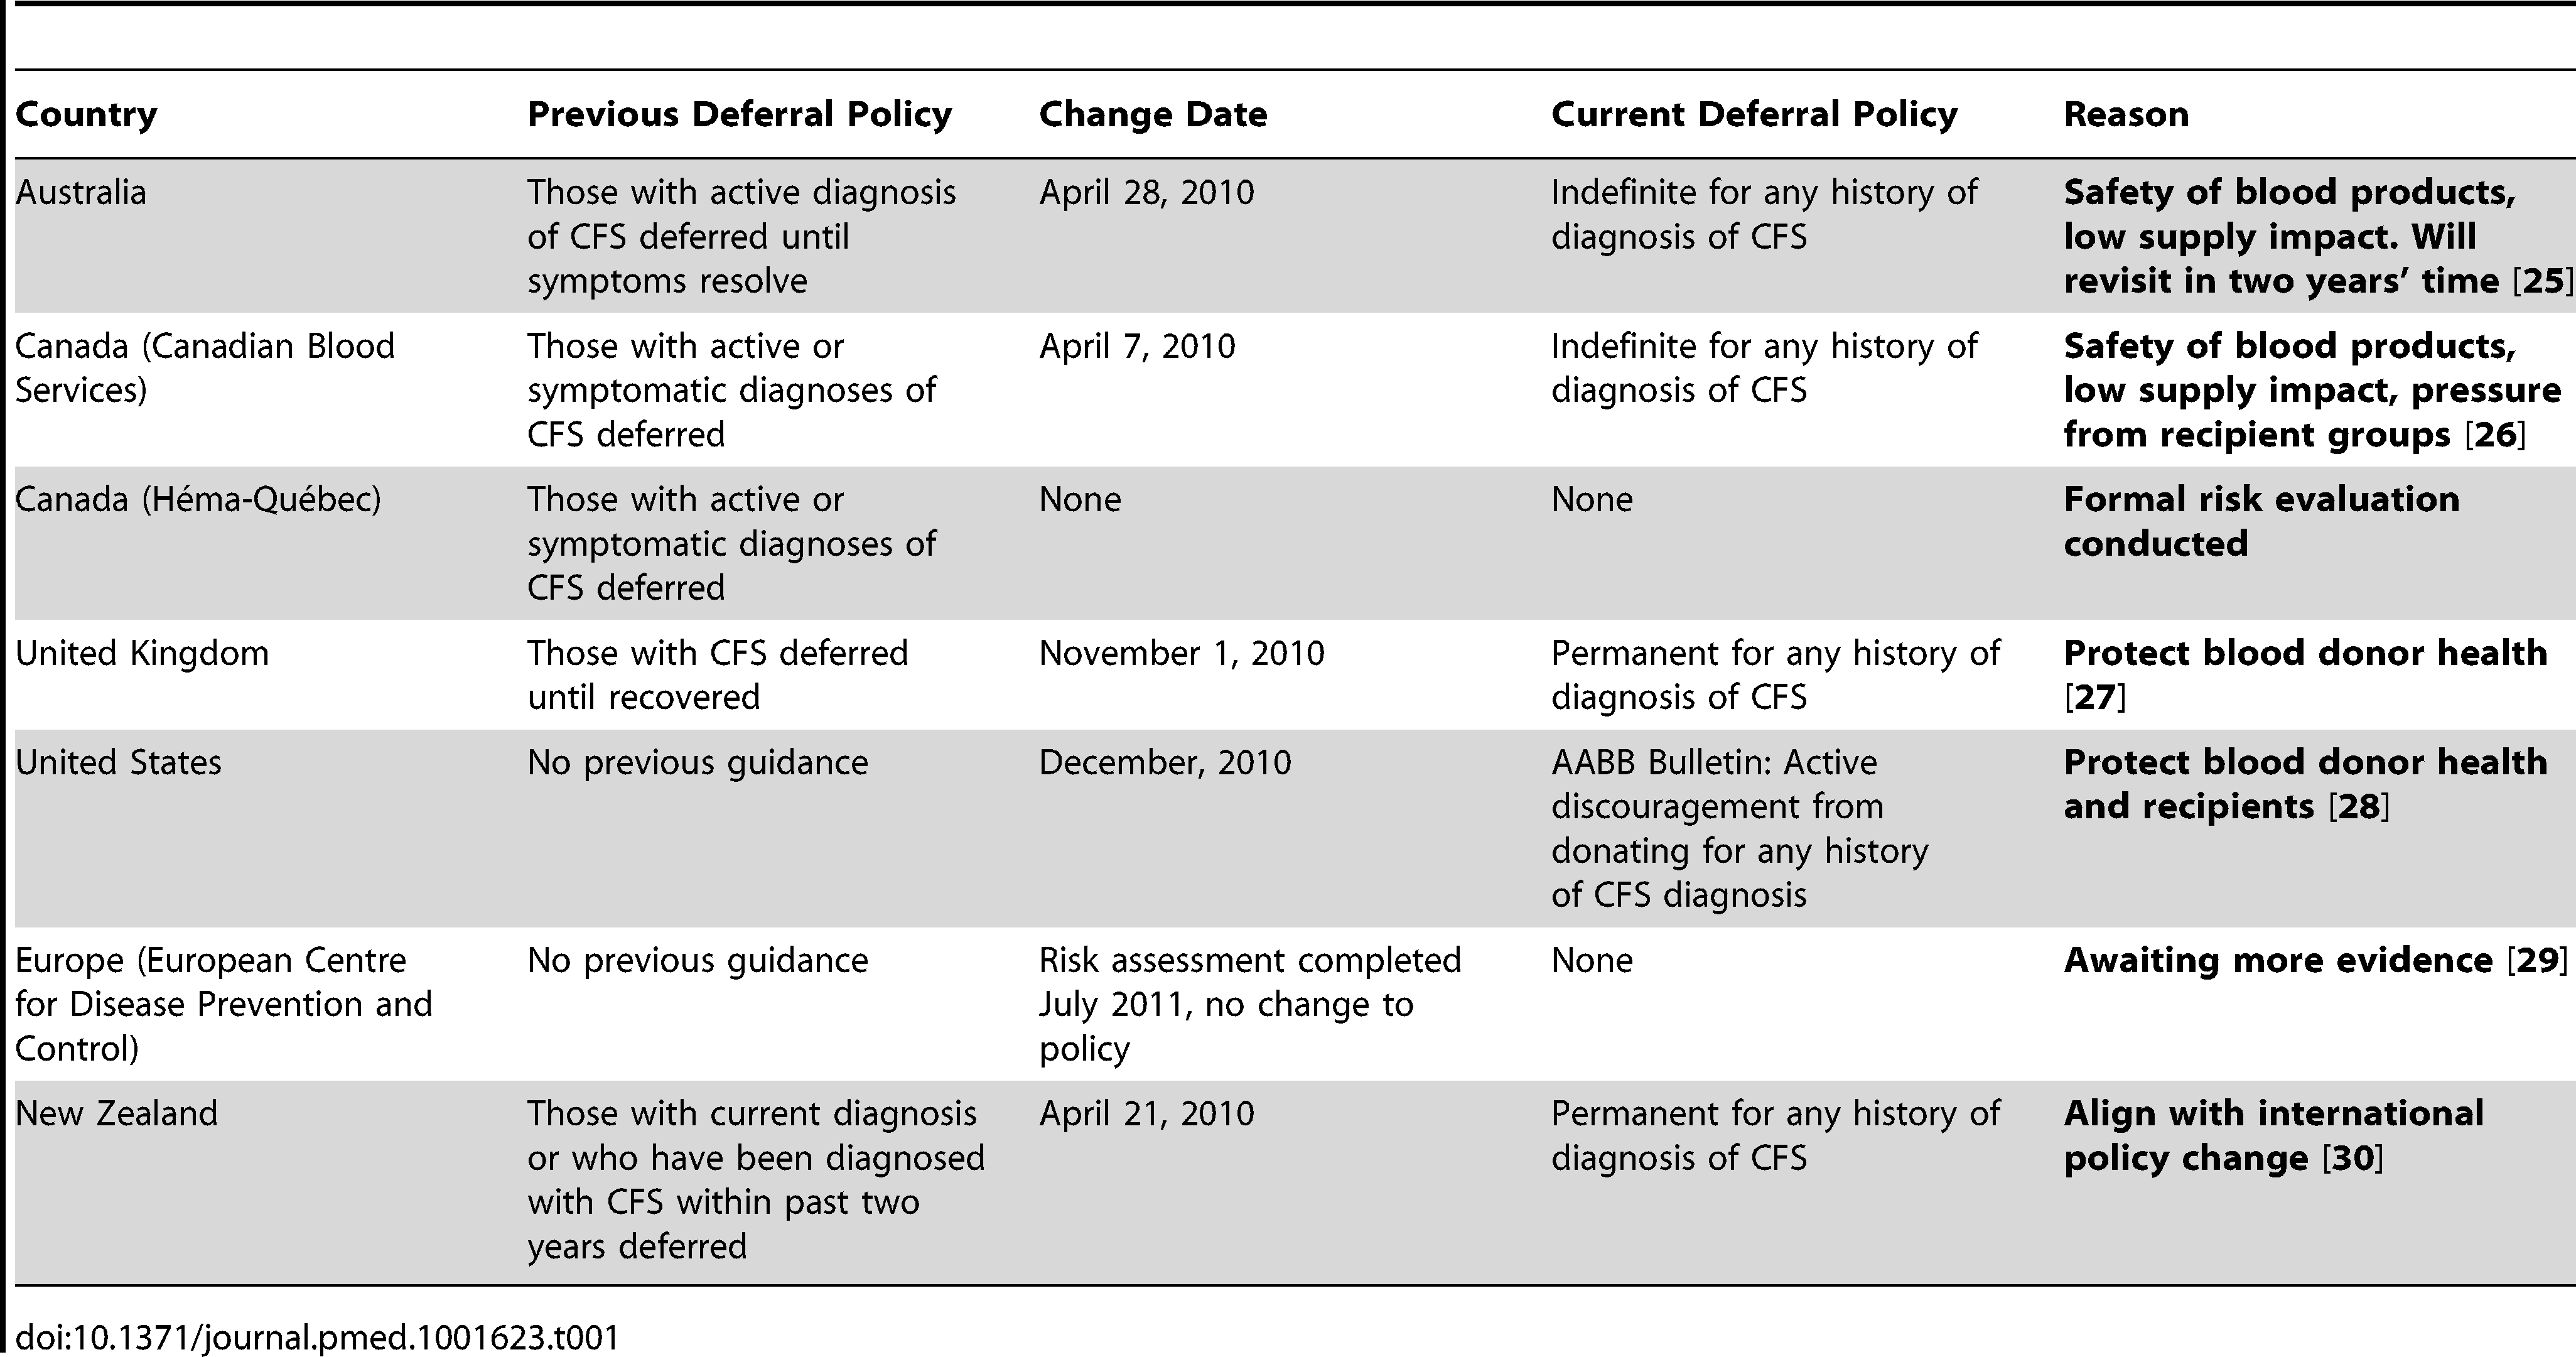 Countries and their past and present deferral policies relating to CFS and the effects of XMRV on deferral policies.